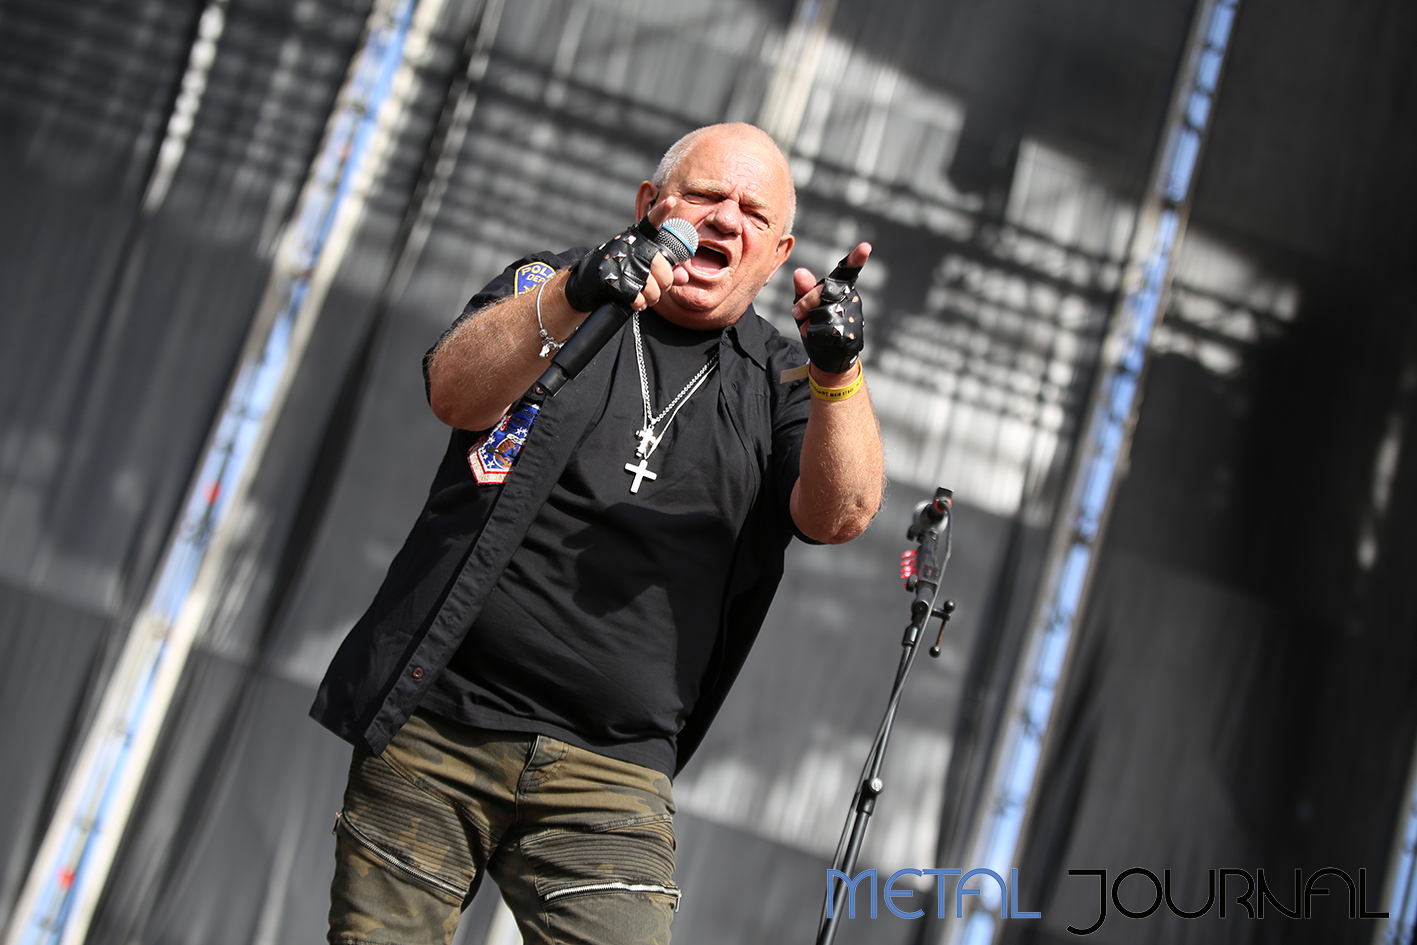 udo metal journal rock the coast 2019 pic 7